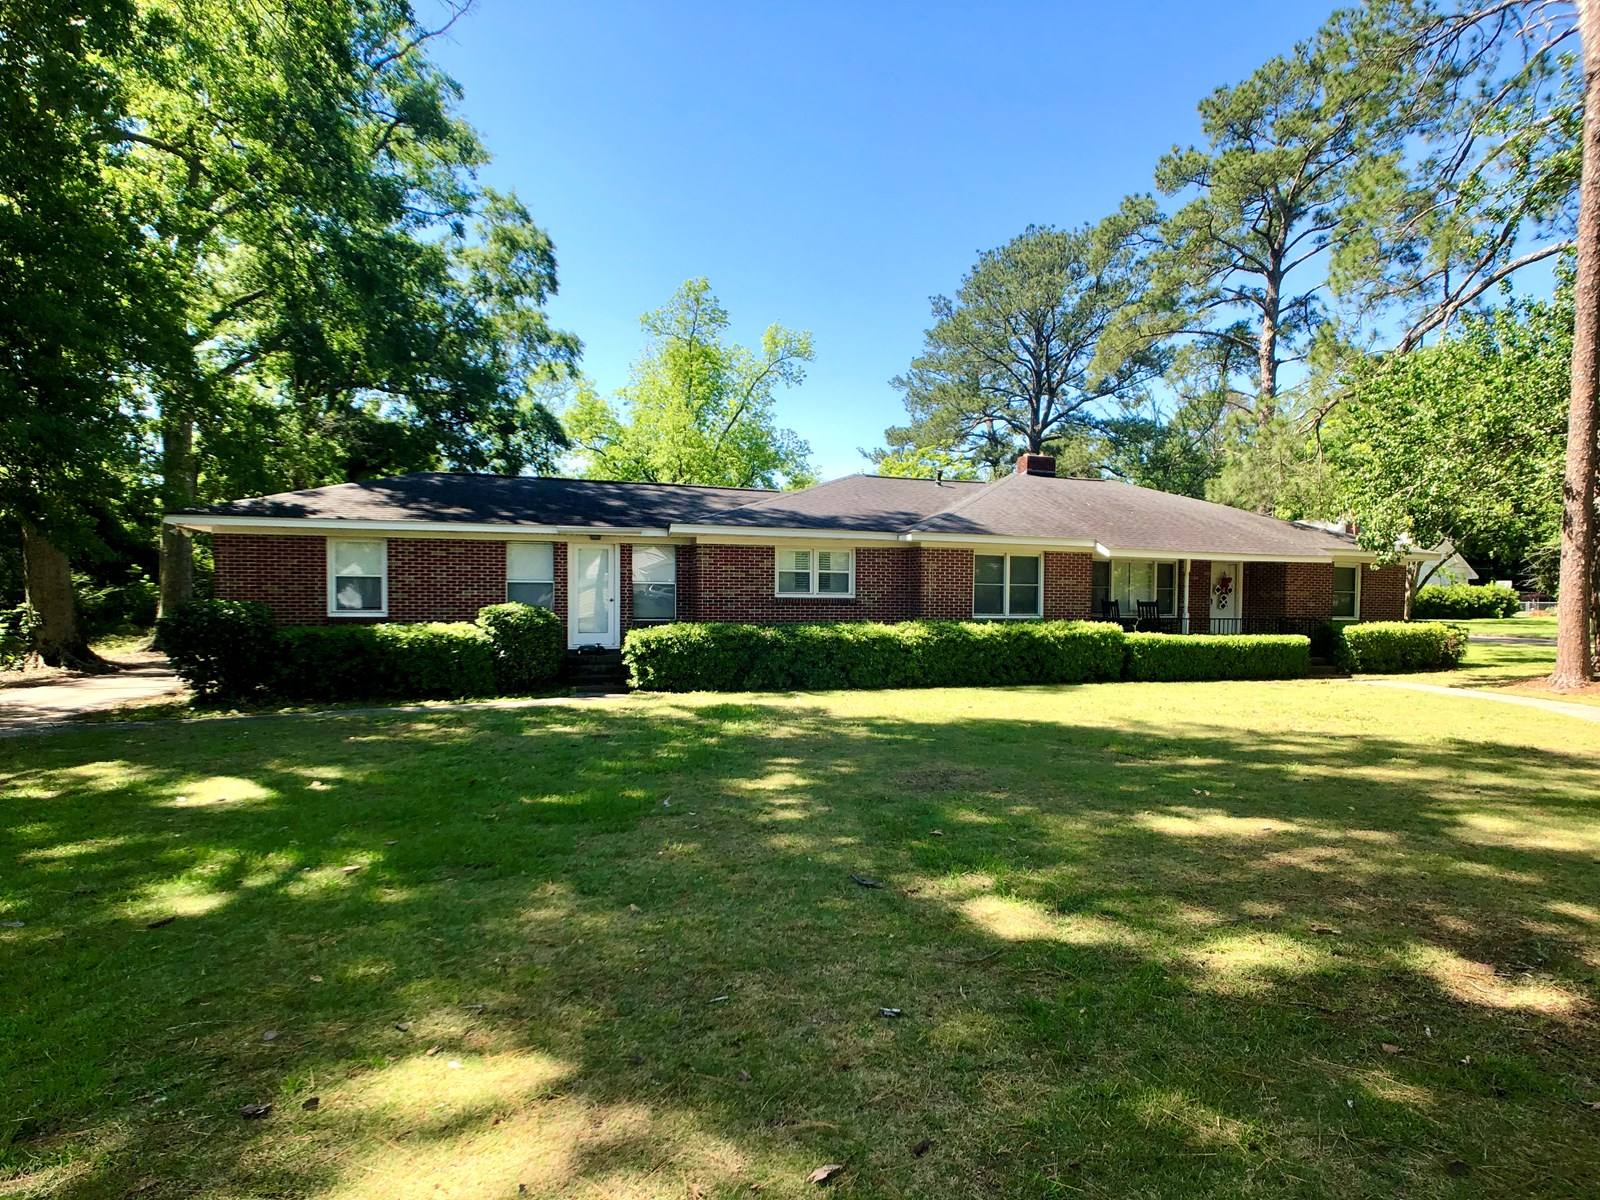 Large brick home in town for sale Hartford, Alabama